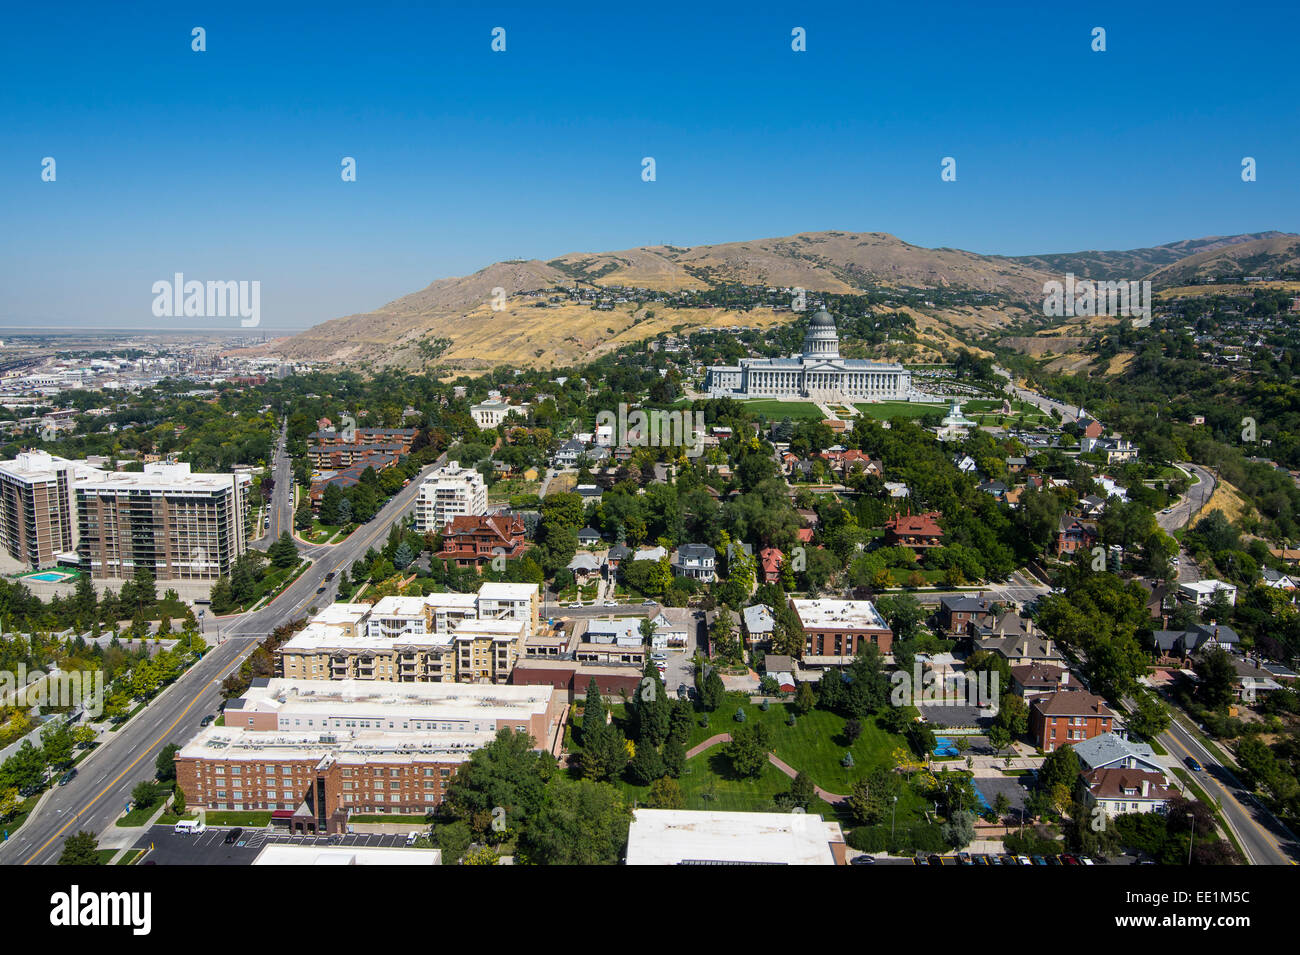 View over the Utah State Capitol and Salt Lake City, Utah, United States of America, North America - Stock Image